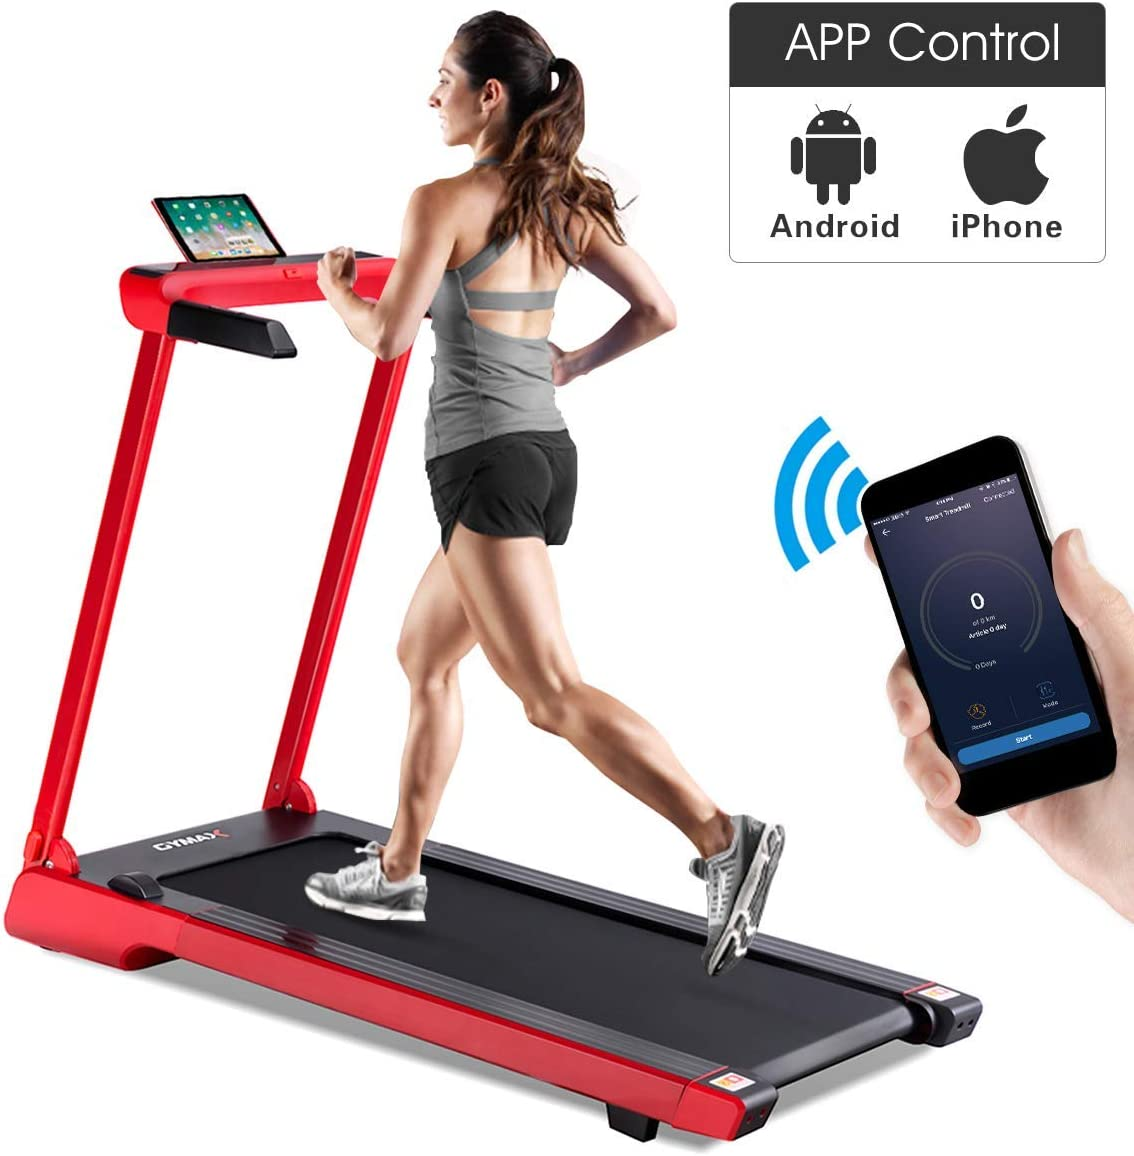 Goplus 2.25 HP Folding Electric Treadmill Free-Installation with Sports App and LED Display